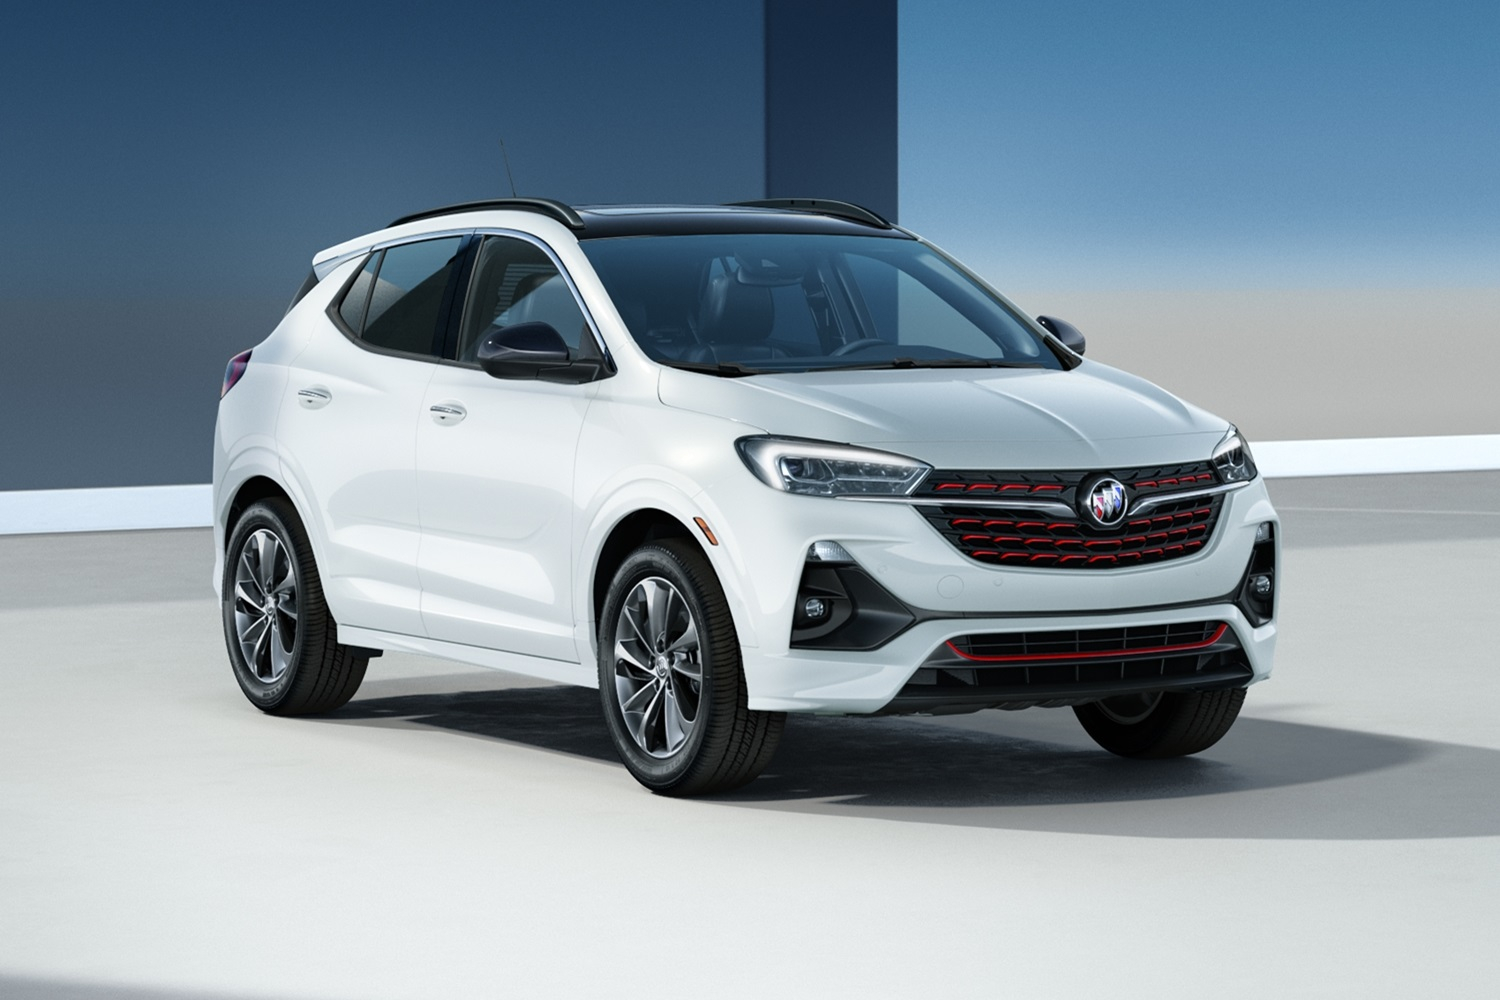 2020 Buick Encore Gx Vs. Buick Encore: Dimensions | Gm Authority New 2022 Buick Encore Cargo Space, Cost, Curb Weight